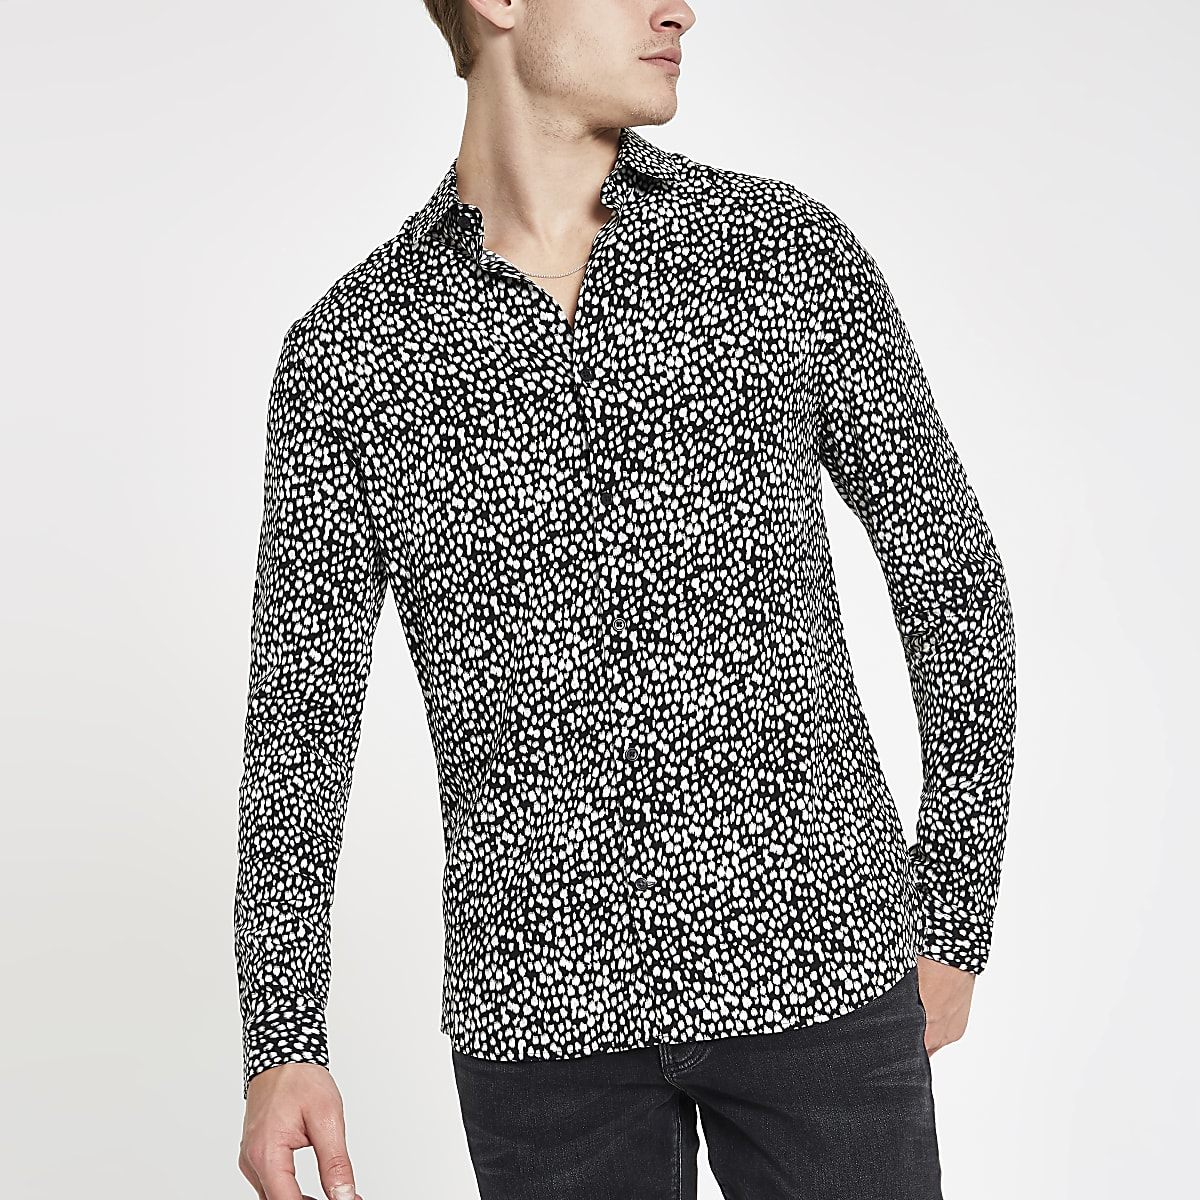 28aa67c2a115 Black leopard print long sleeve shirt - Long Sleeve Shirts - Shirts - men